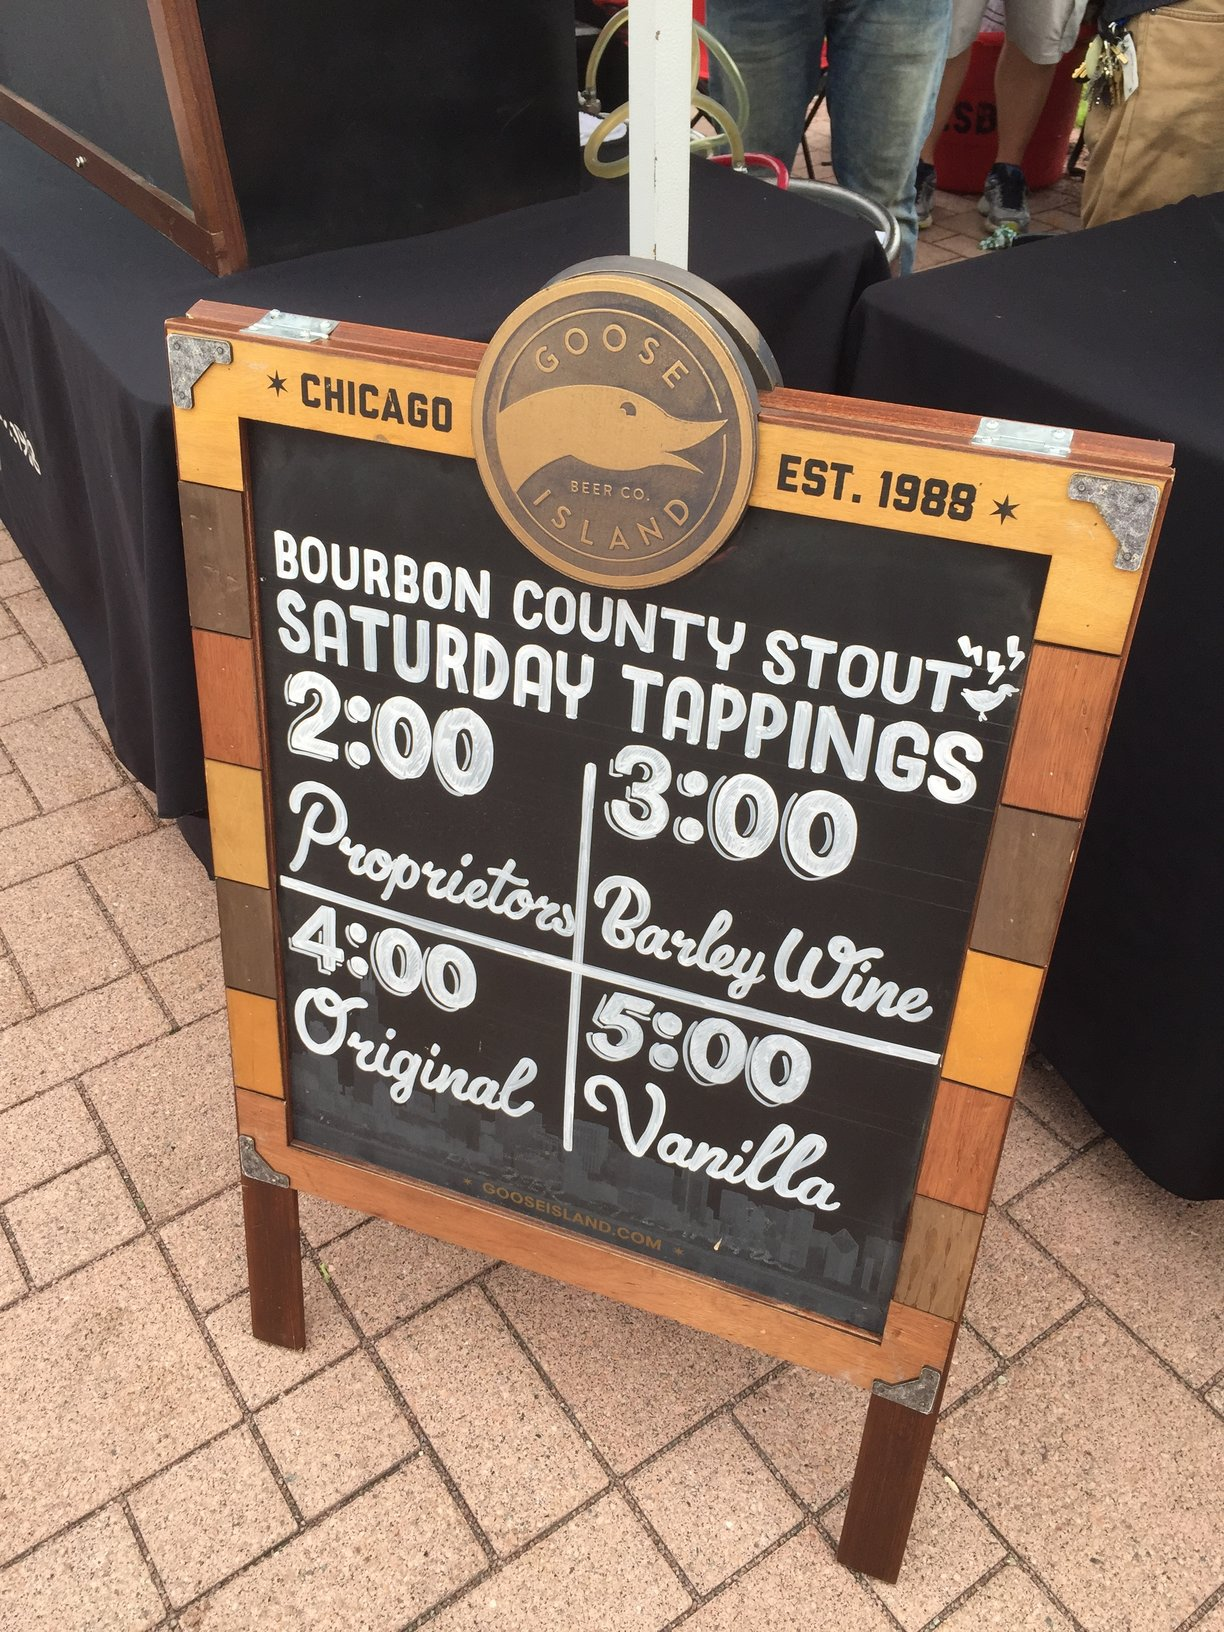 Goose Island brought some pretty good beers to the 2015 Chicago Ale Fest.